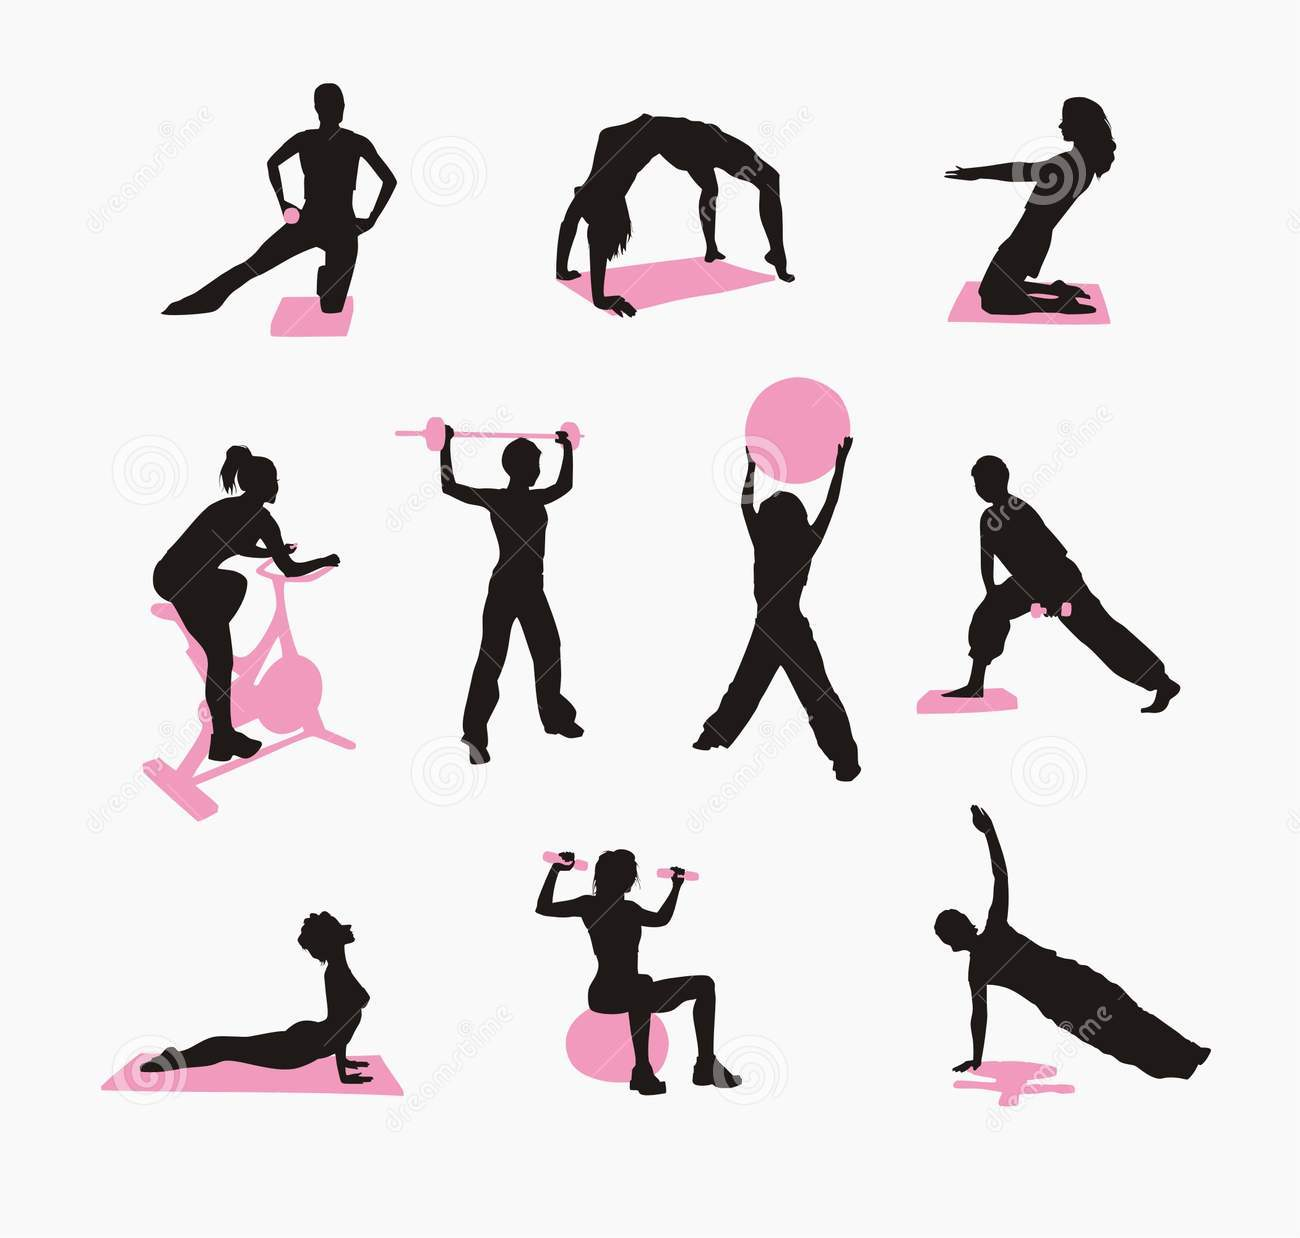 Free Fitness Cliparts, Download Free Clip Art, Free Clip Art on.